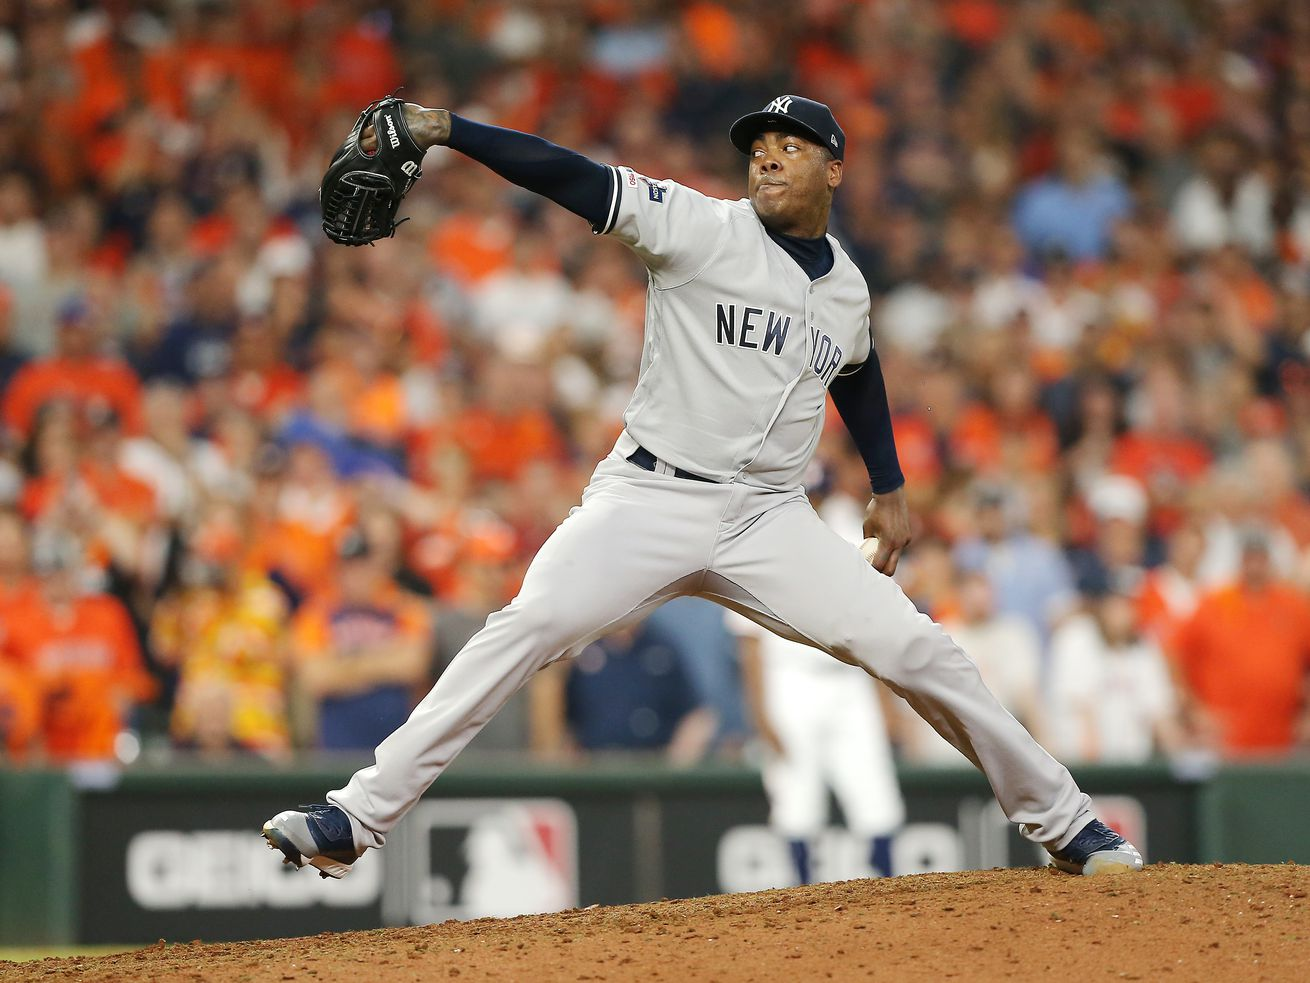 Yankees closer Aroldis Chapman has COVID-19